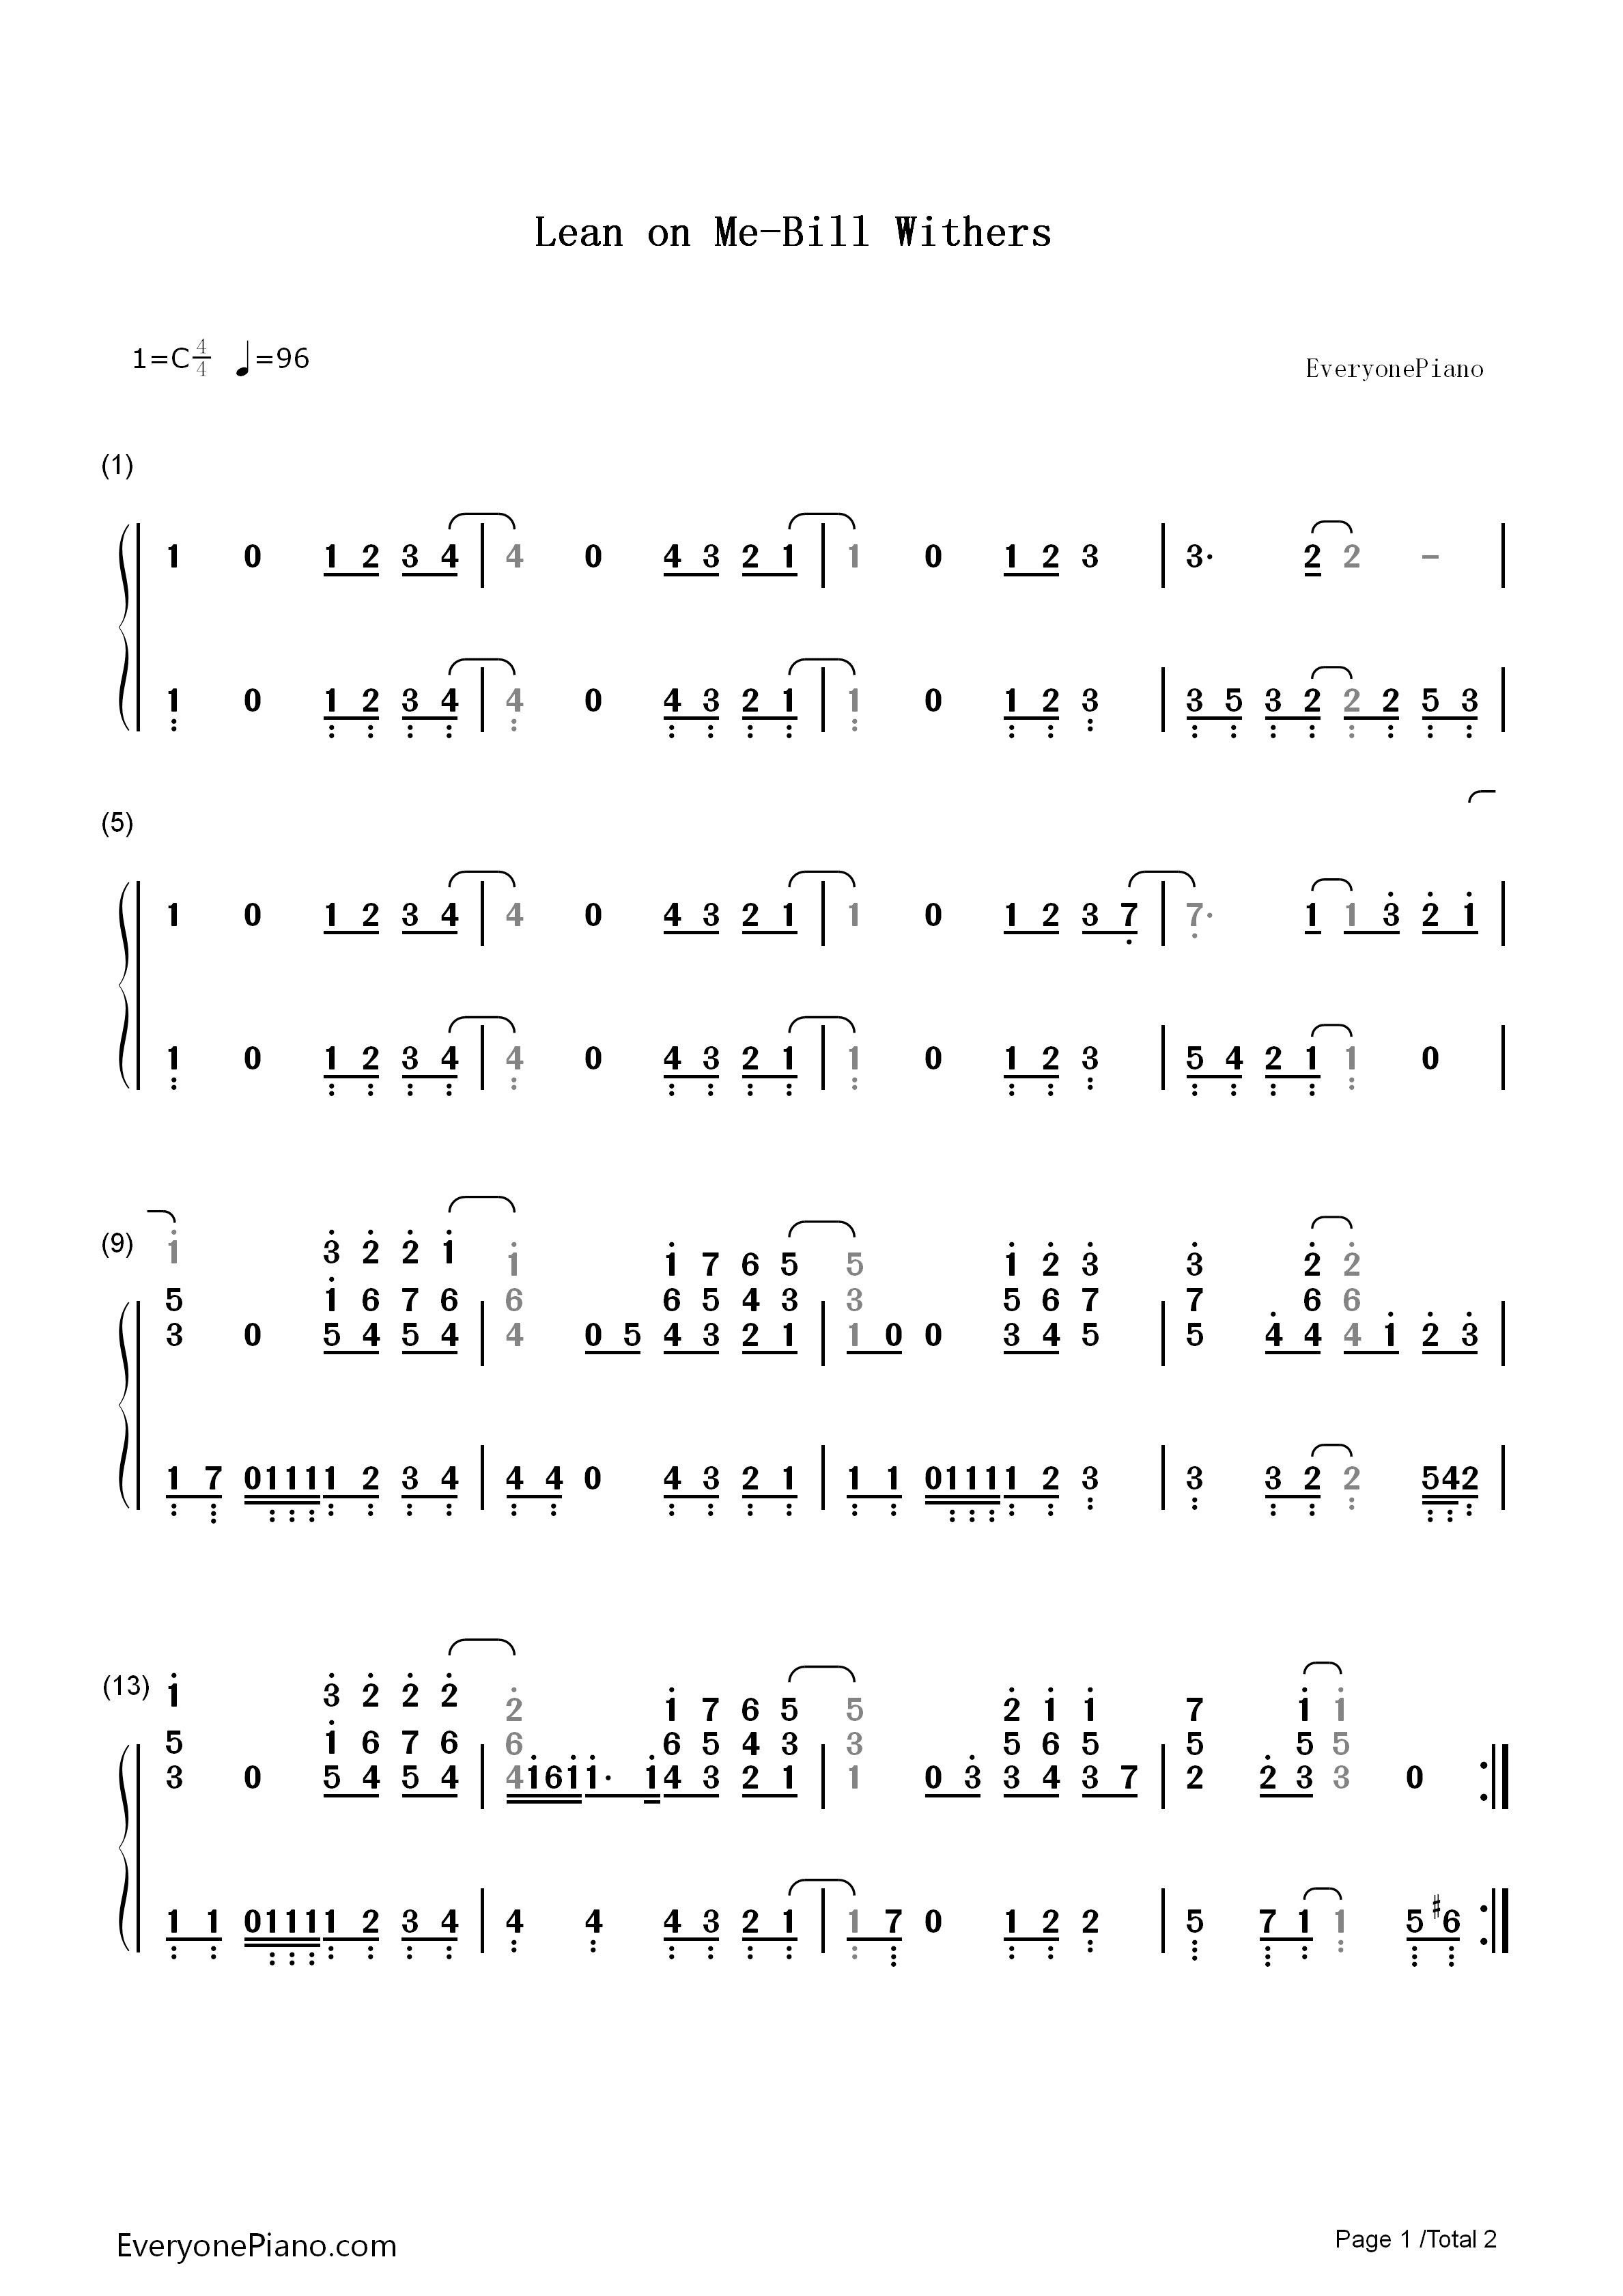 Lean on Me-Bill Withers Numbered Musical Notation Preview 1-Free Piano Sheet Music u0026 Piano Chords